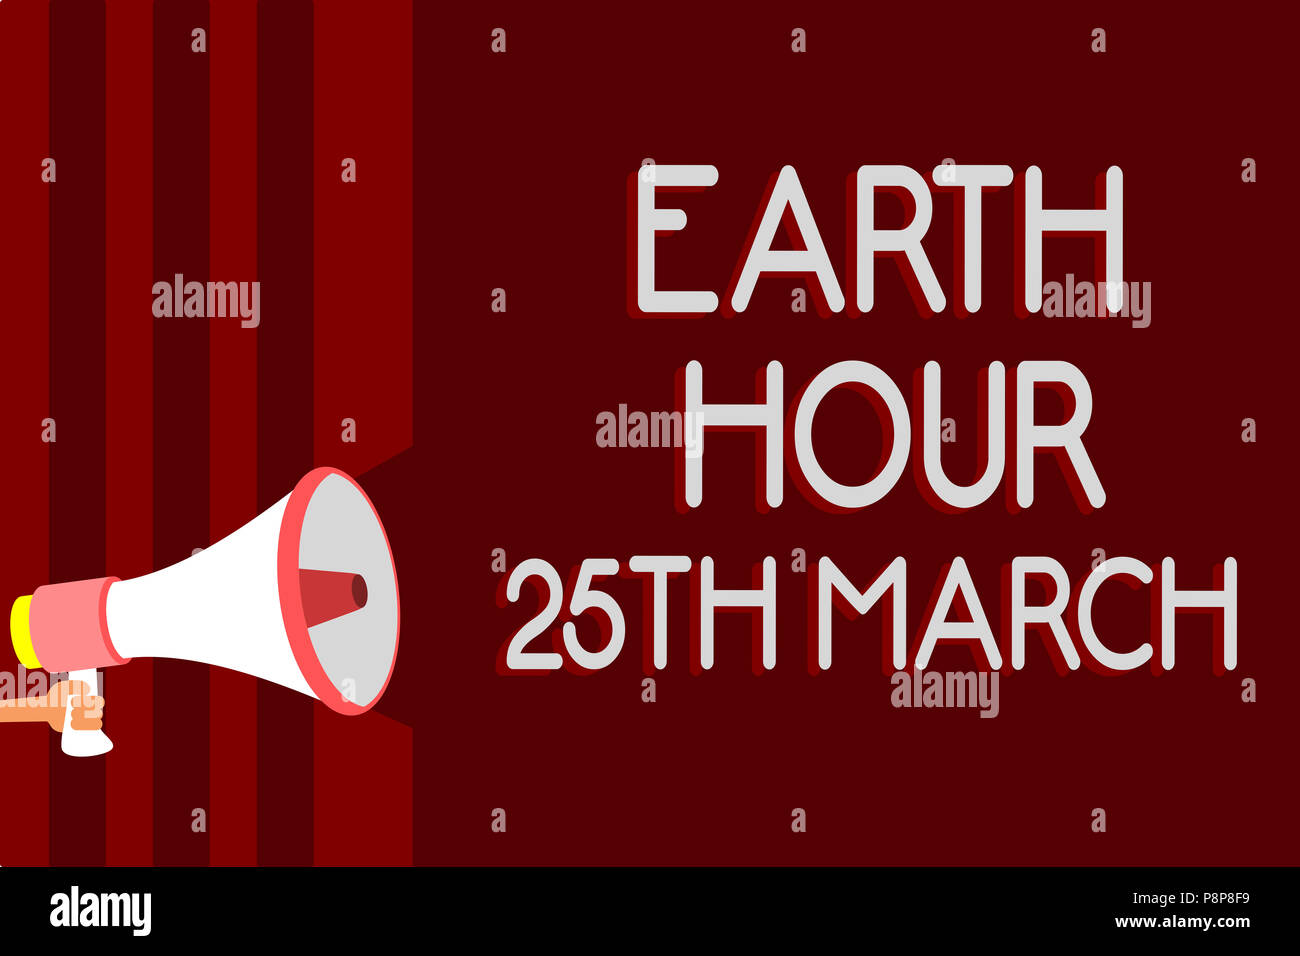 Handwriting Text Earth Hour 25th March Concept Meaning Symbol